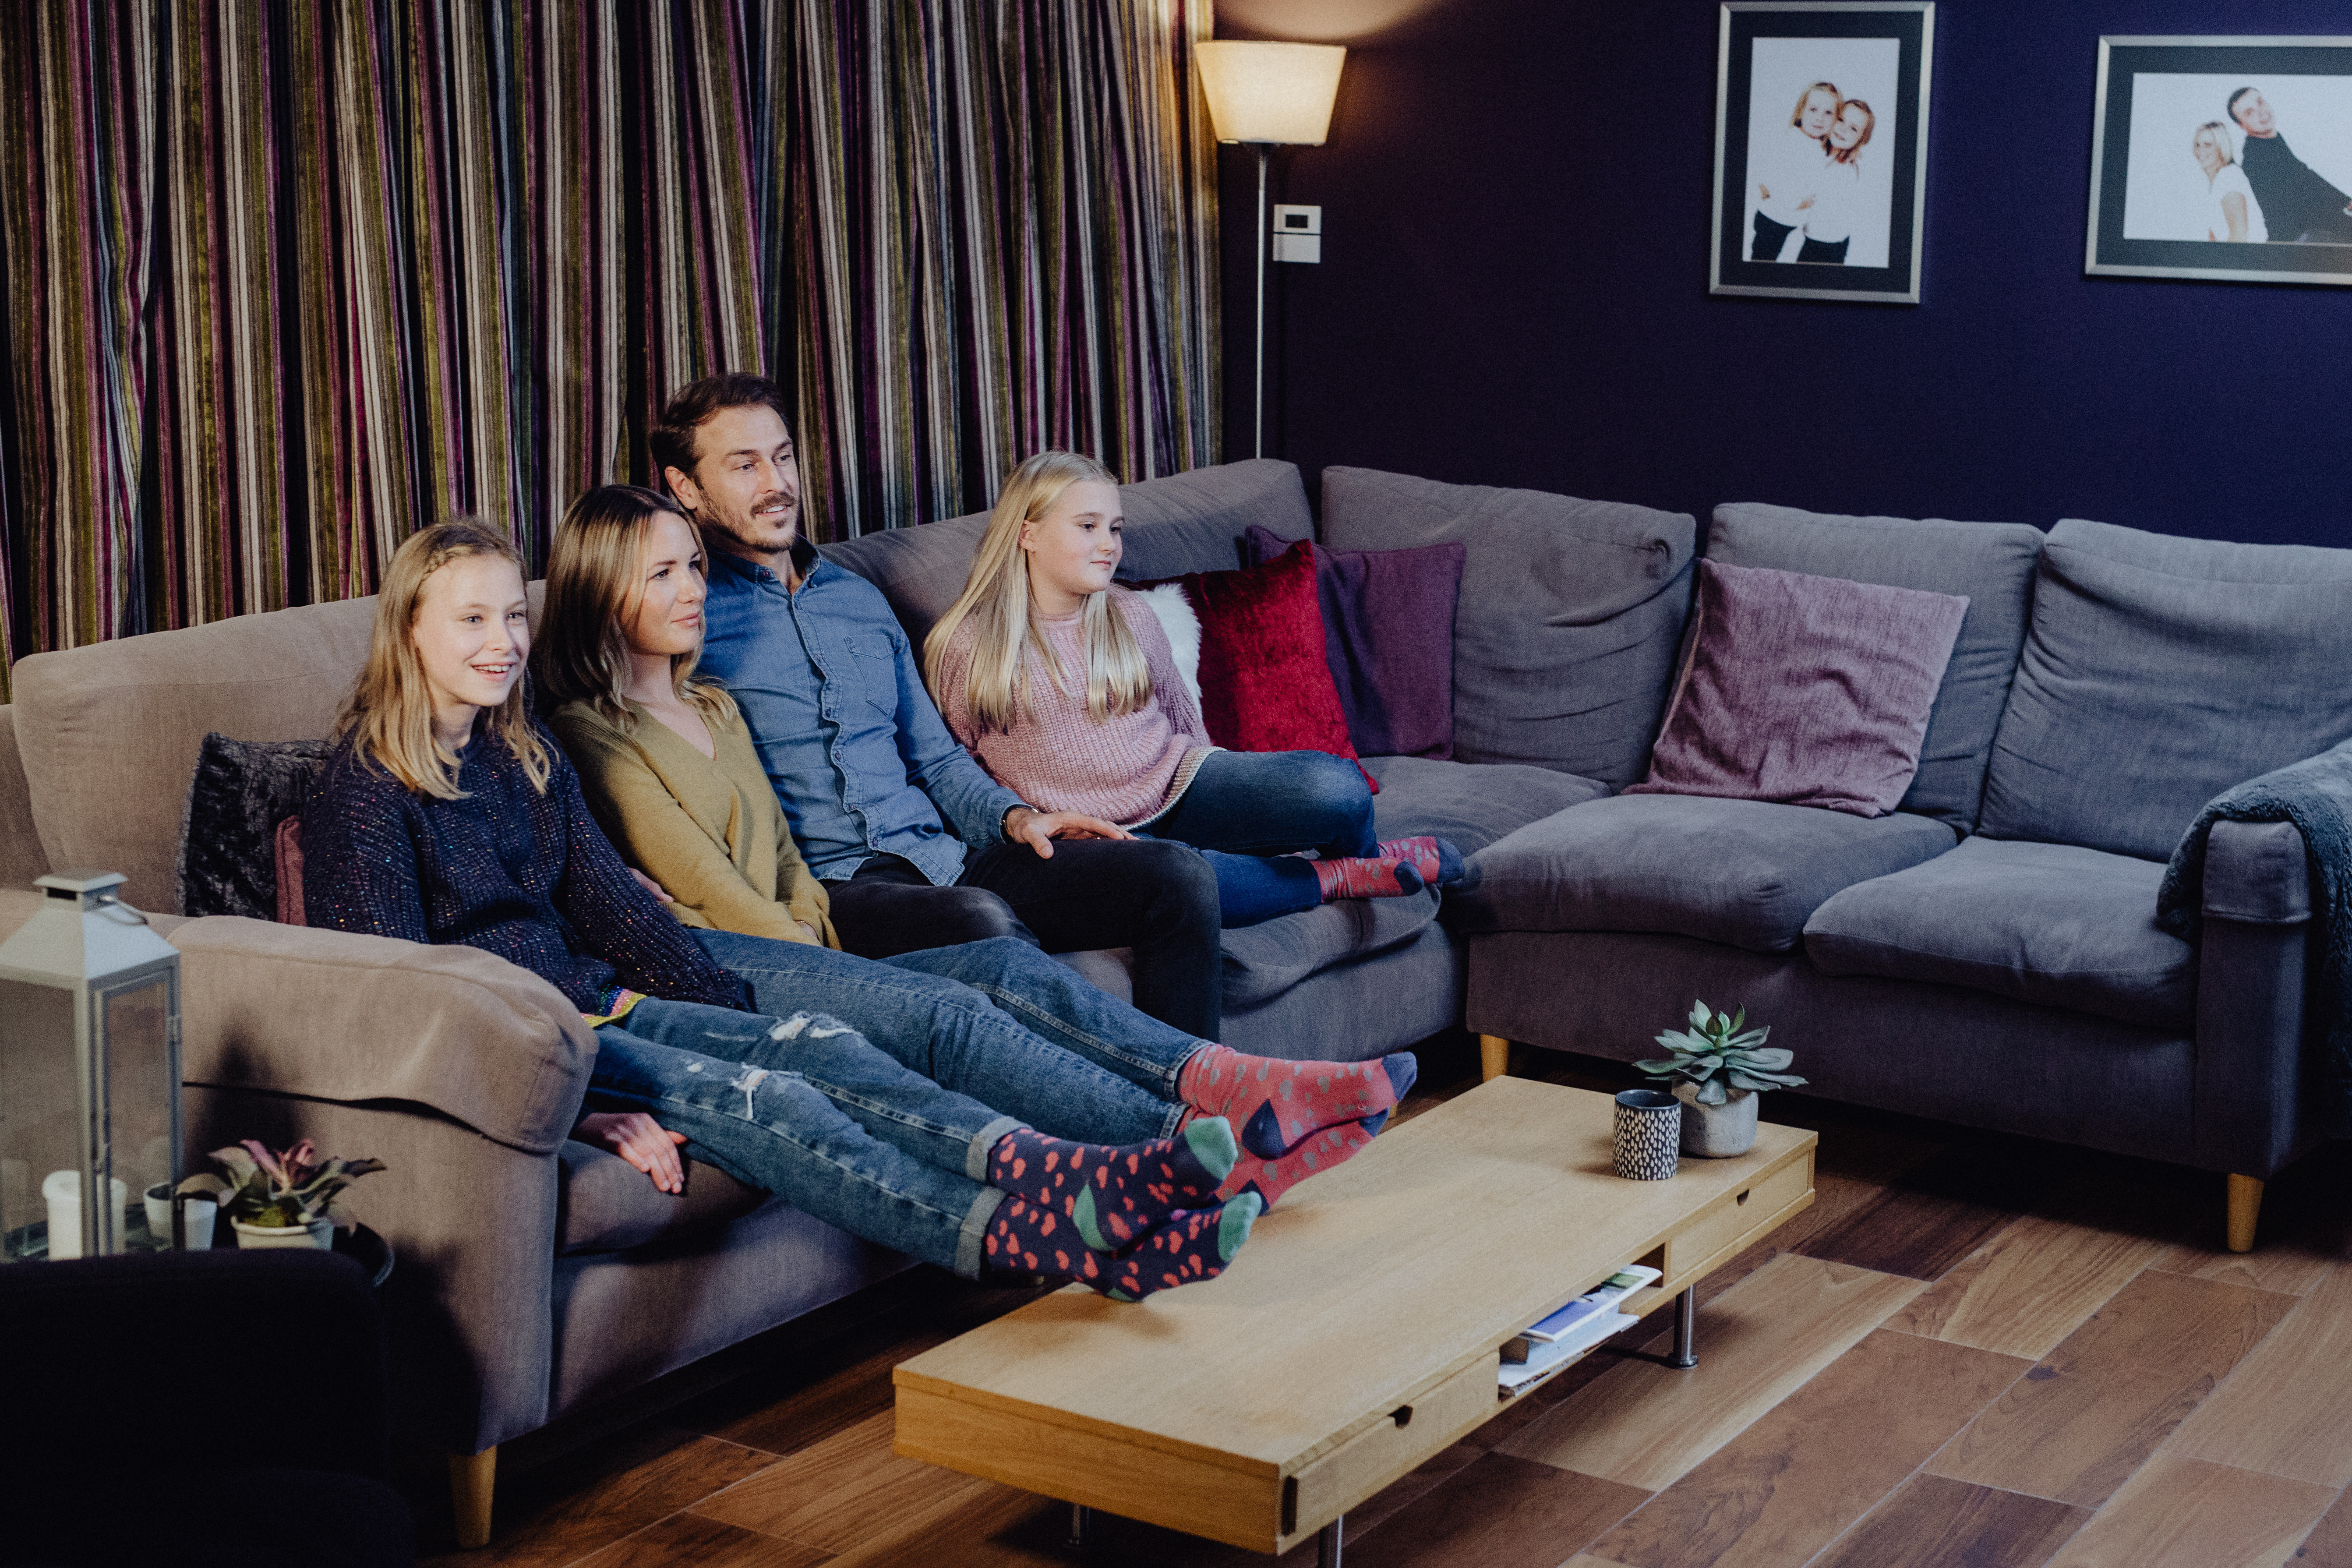 Warmflow - Warmflow launches TV ads in major marketing push News